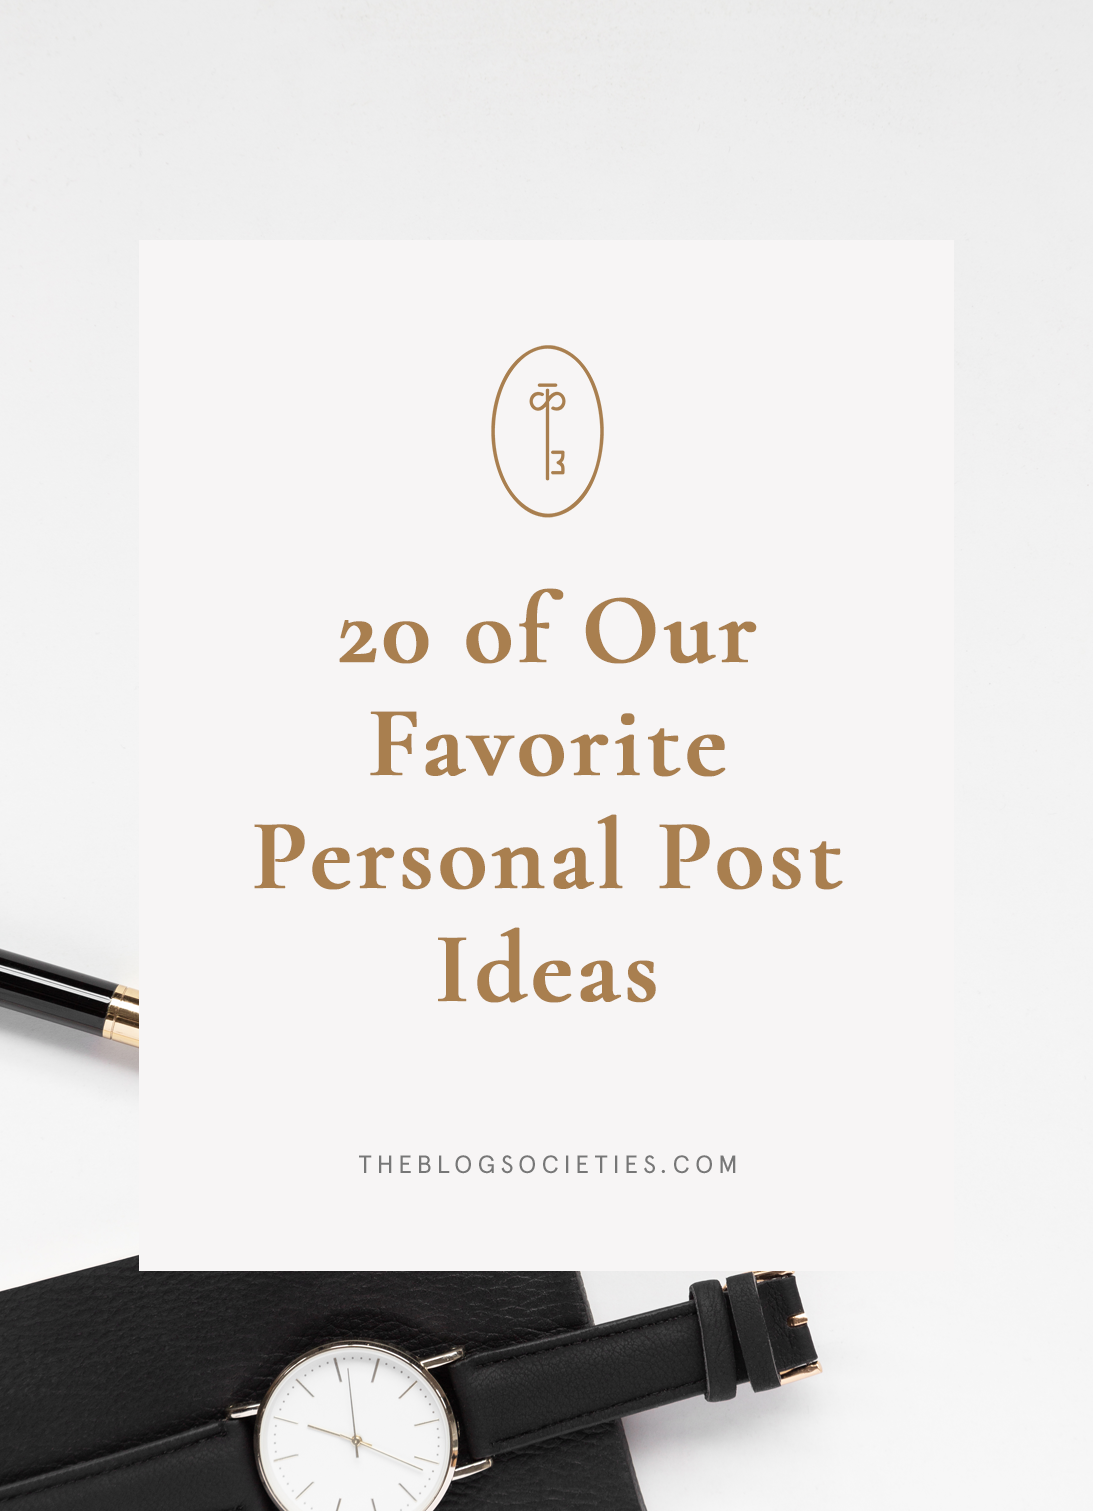 20 of Our Favorite Personal Post Ideas | The Blog Societies